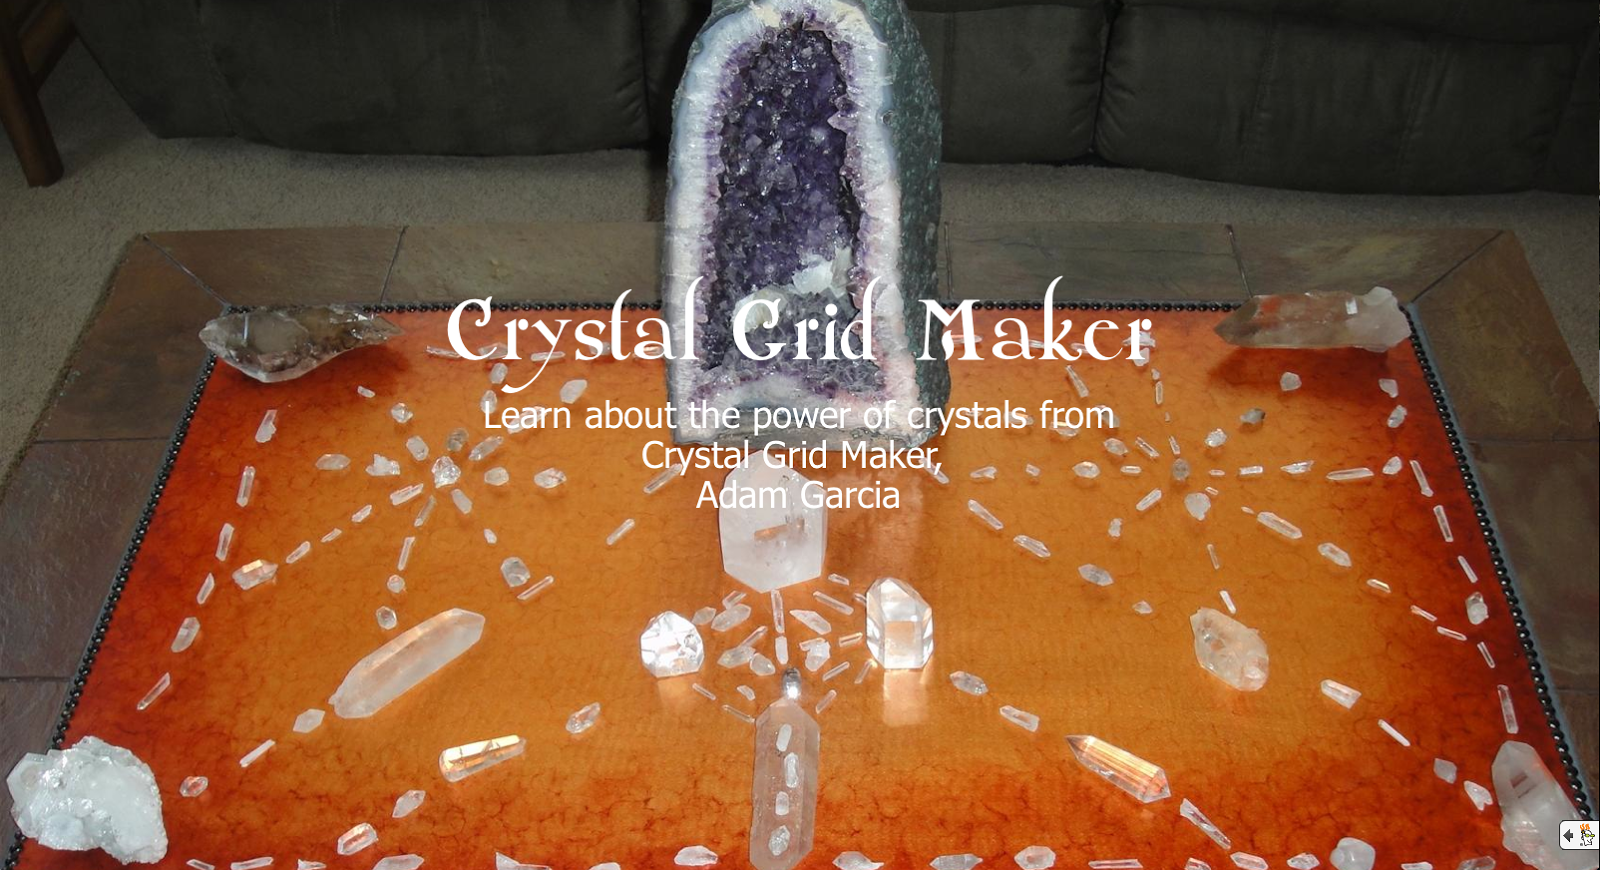 8 Year Old Kid Uses Crystal Grids To Transmute Negative Energy And Explains How It Works